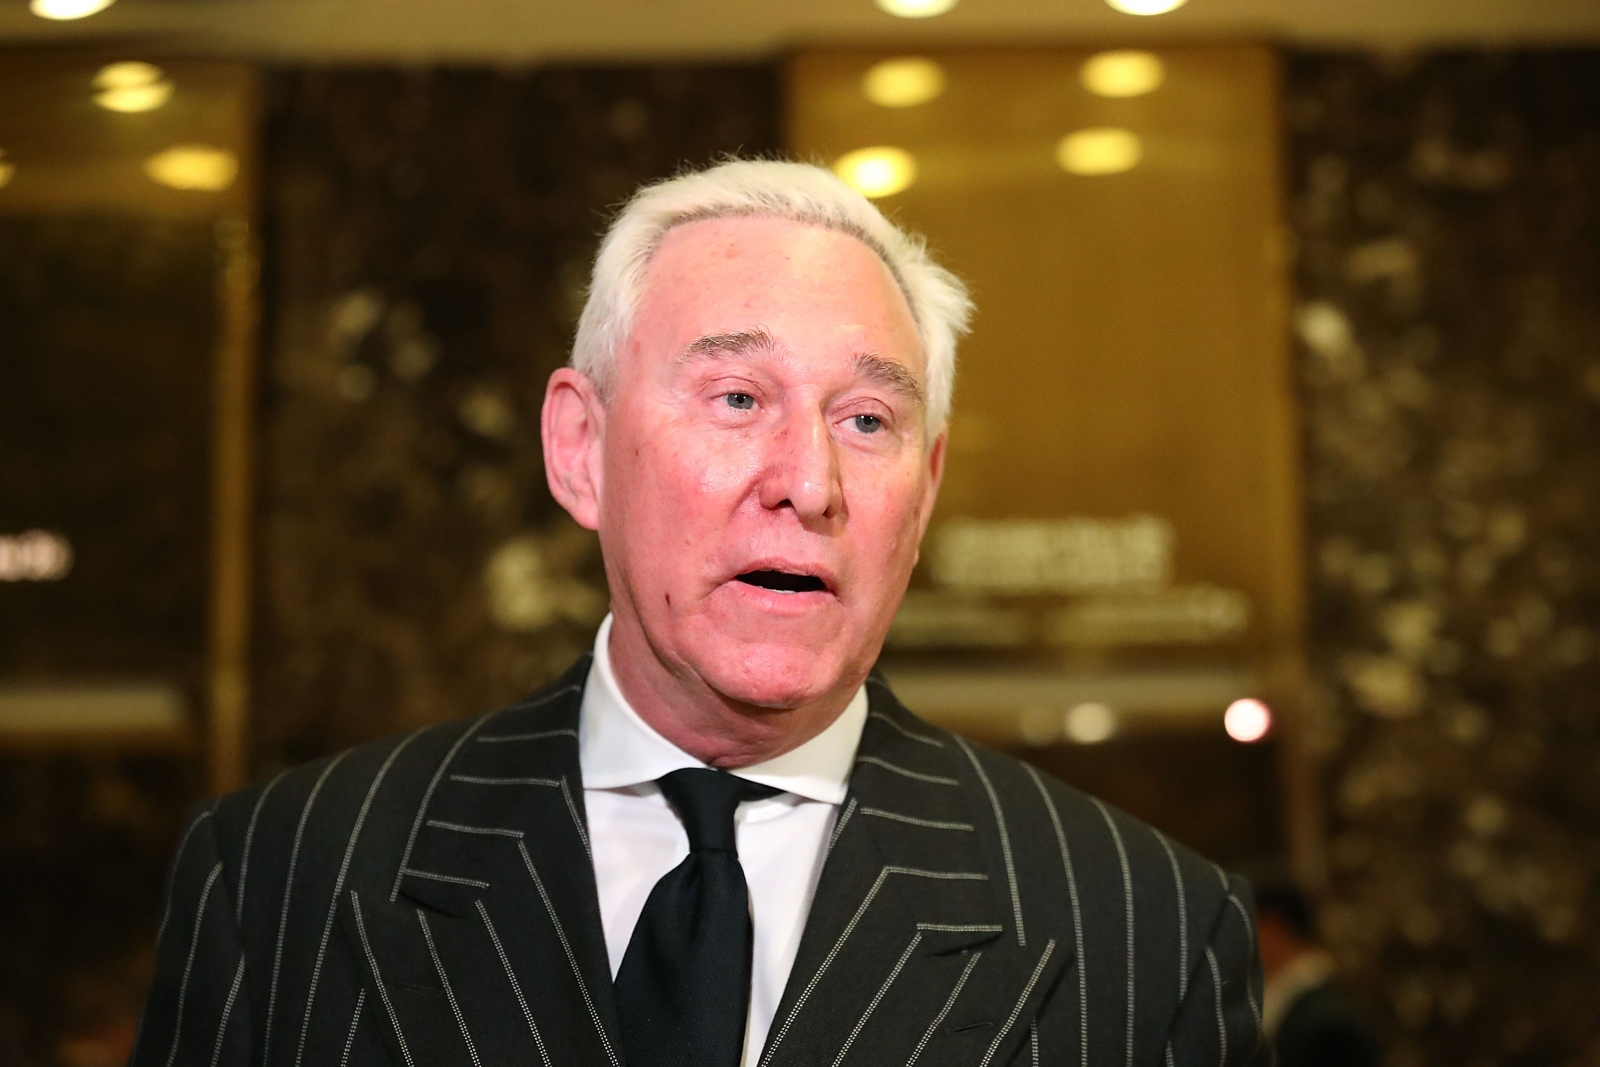 Senate Intelligence Committee asks Roger Stone to preserve records